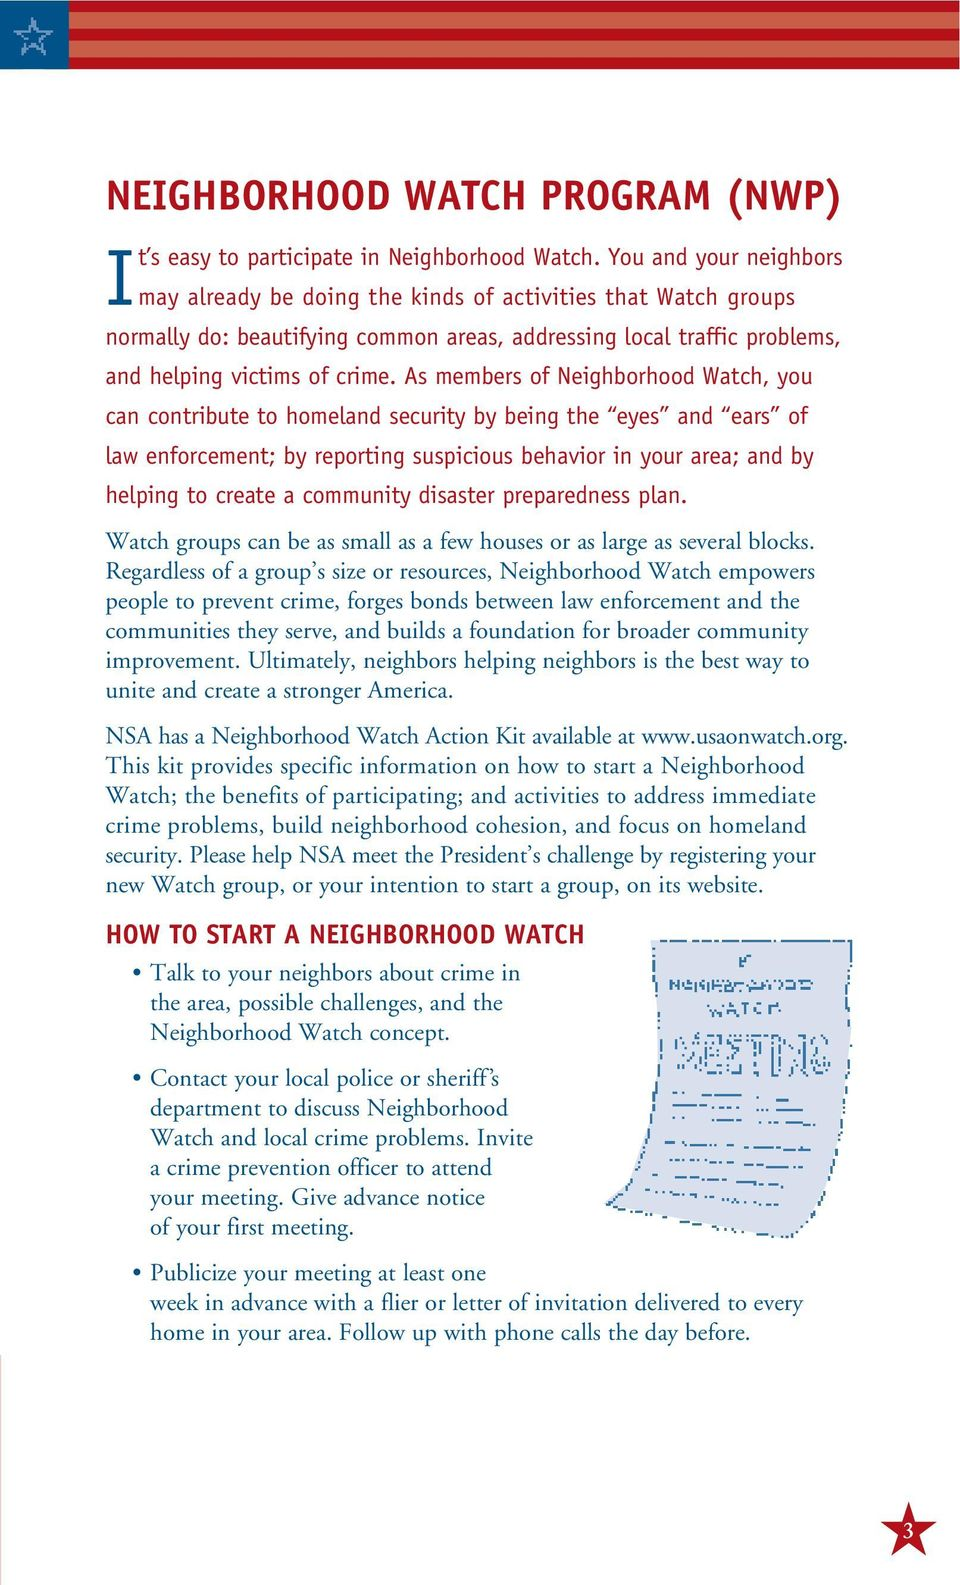 As members of Neighborhood Watch, you can contribute to homeland security by being the eyes and ears of law enforcement; by reporting suspicious behavior in your area; and by helping to create a